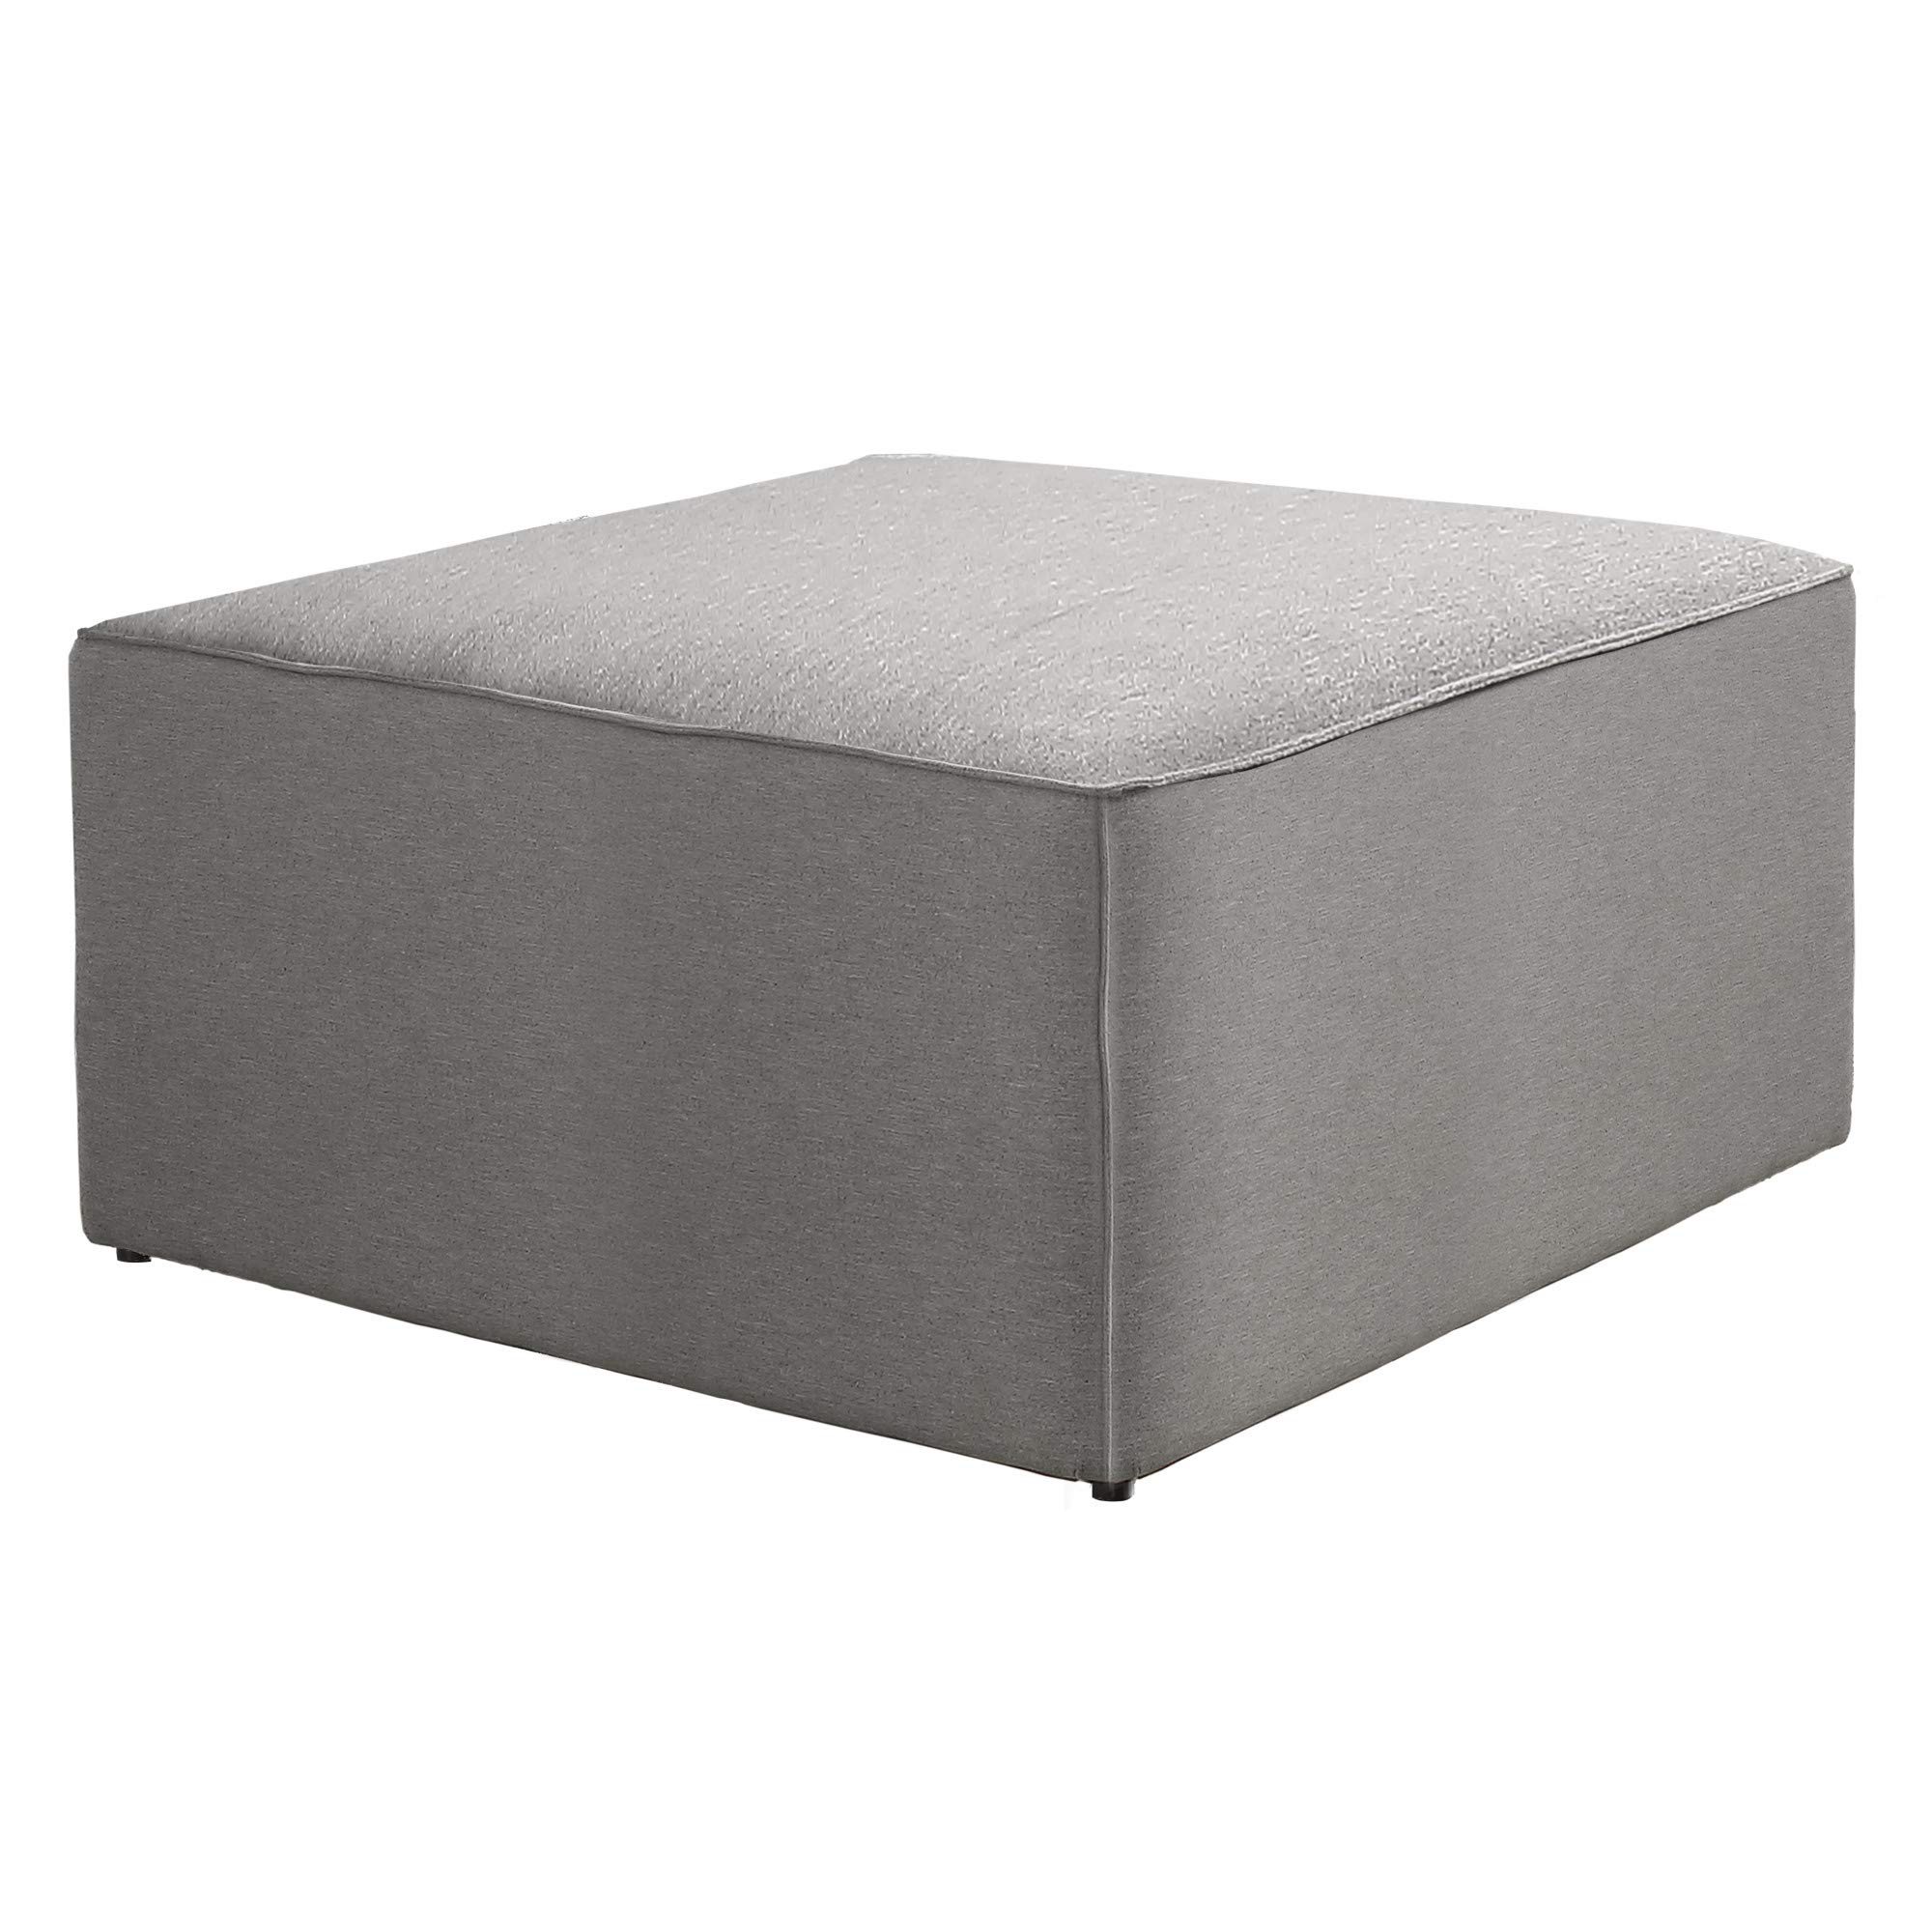 Selma Ottoman in Cloudy Gray Checkers with Track Arms And Block Feet, by Artum Hill